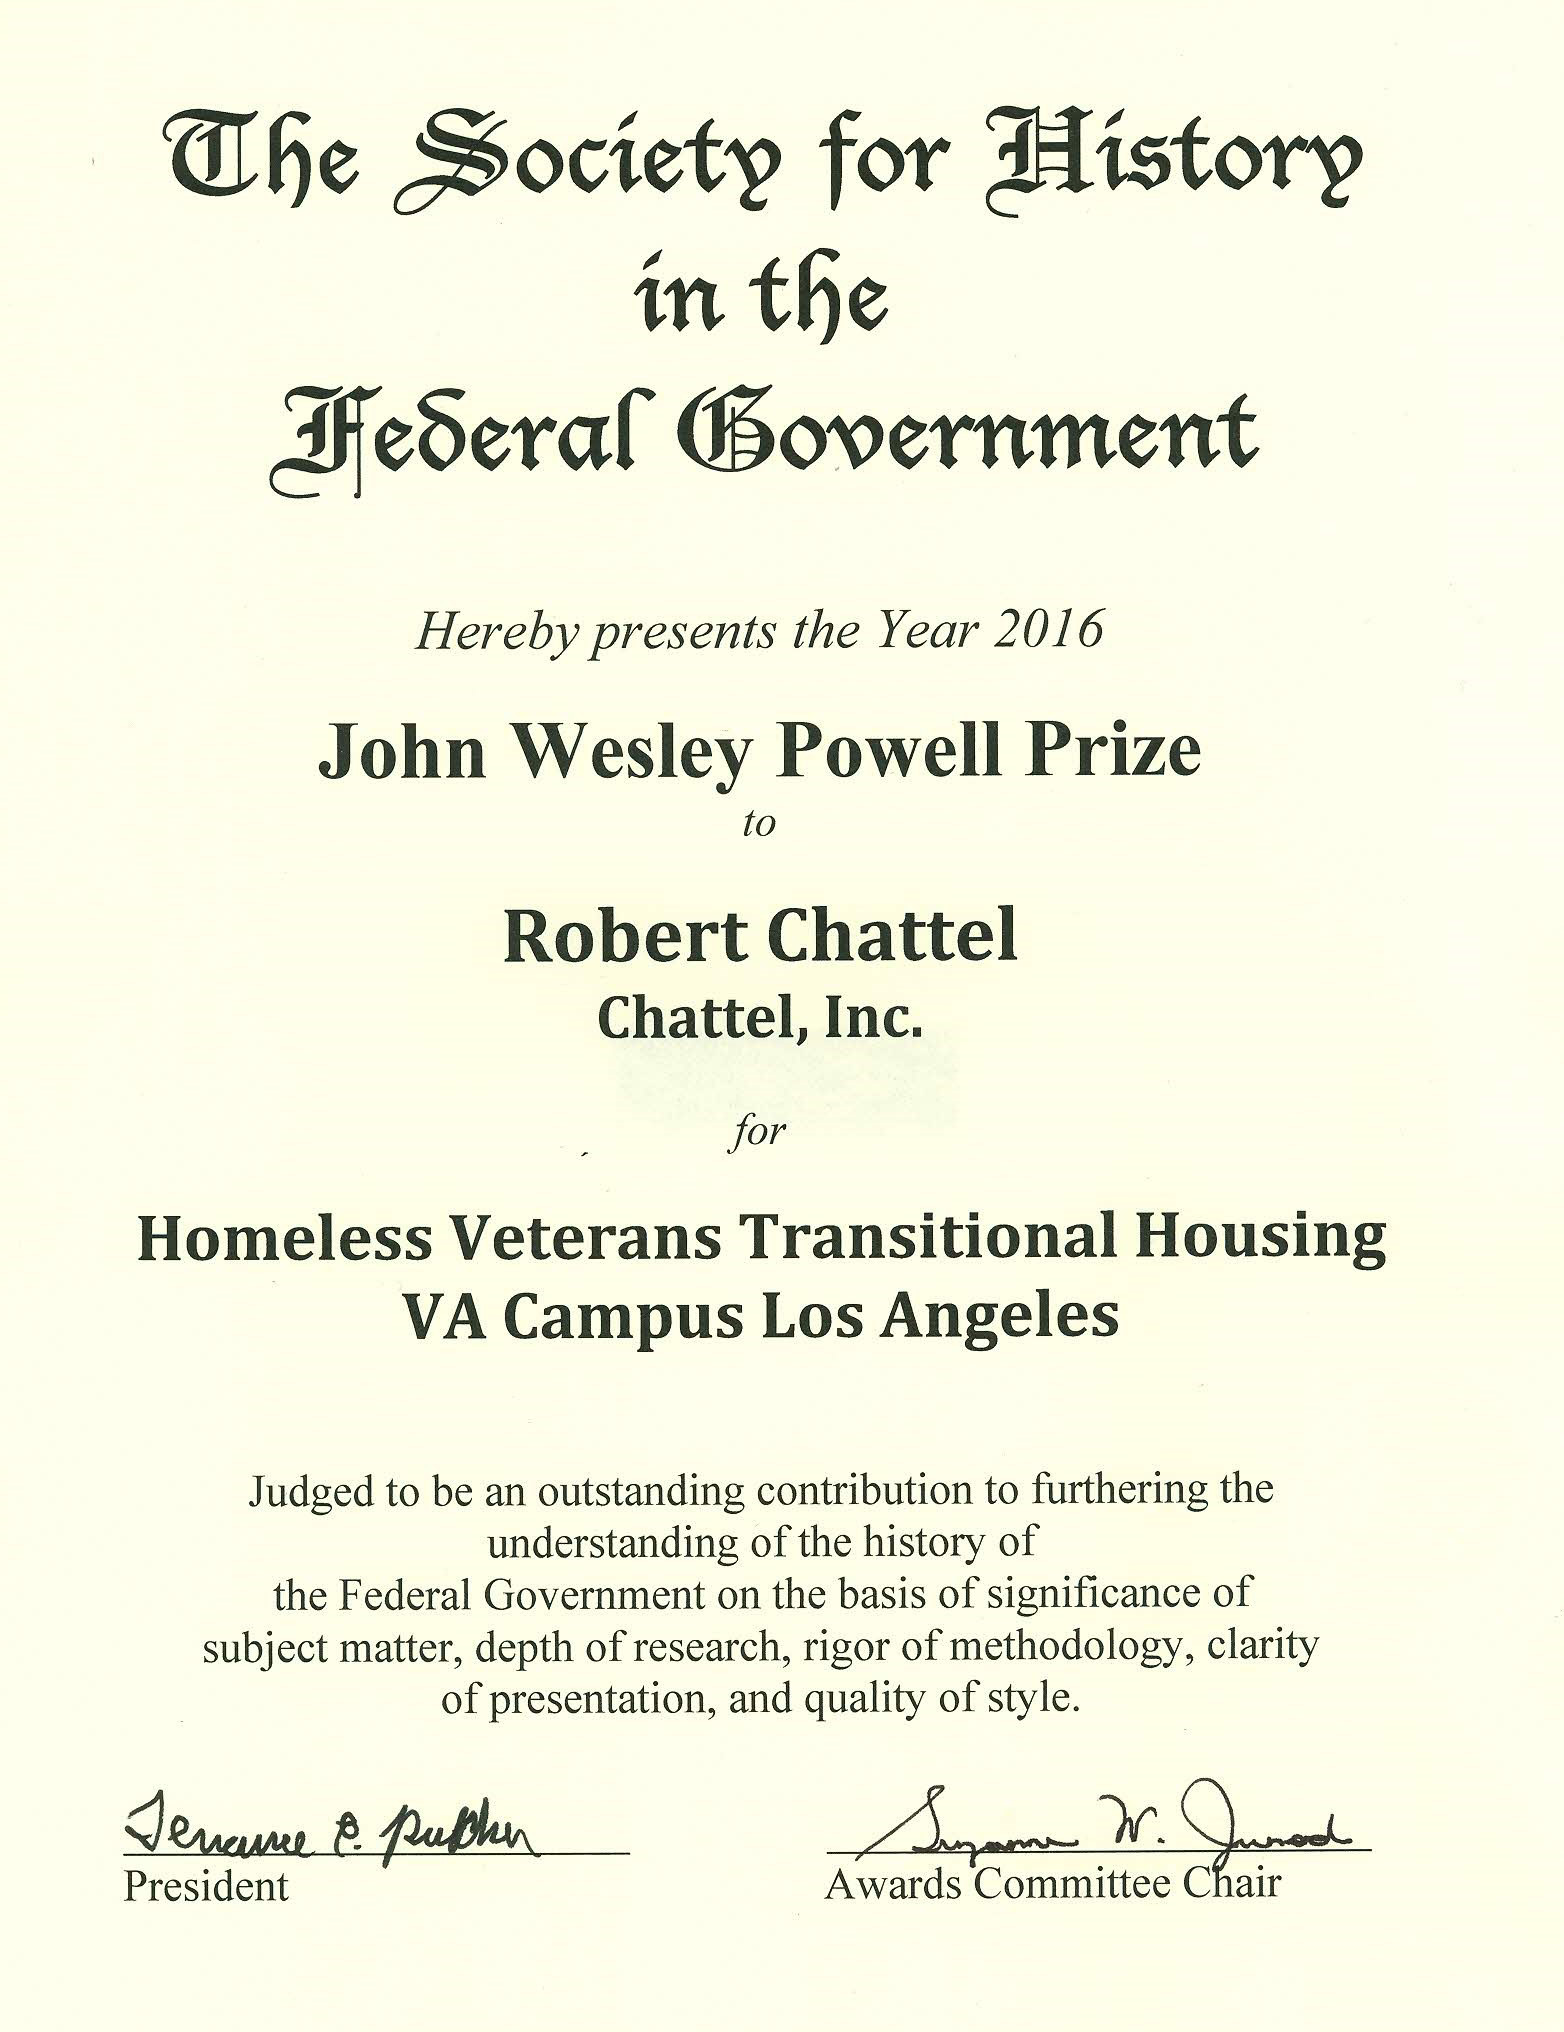 Chattel was the recipient of the 2016 John Wesley Powell Prize, awarded by the Society for History in the Federal Government.